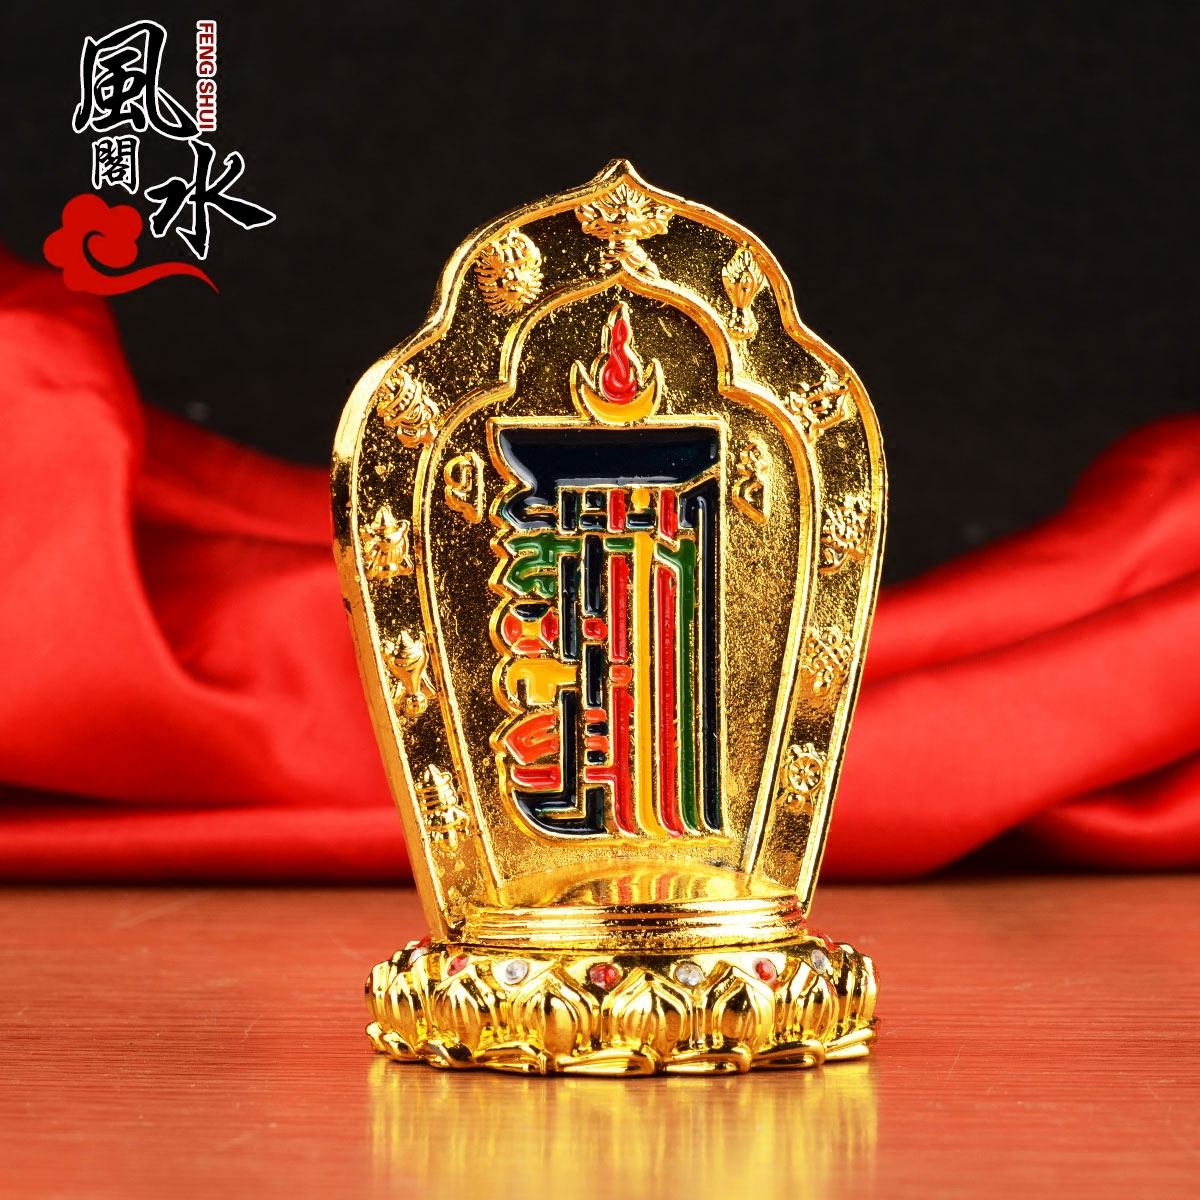 Feng shui court opening feng shui alloy kalachakra buddhist supplies automotive ornaments car ornaments car seat